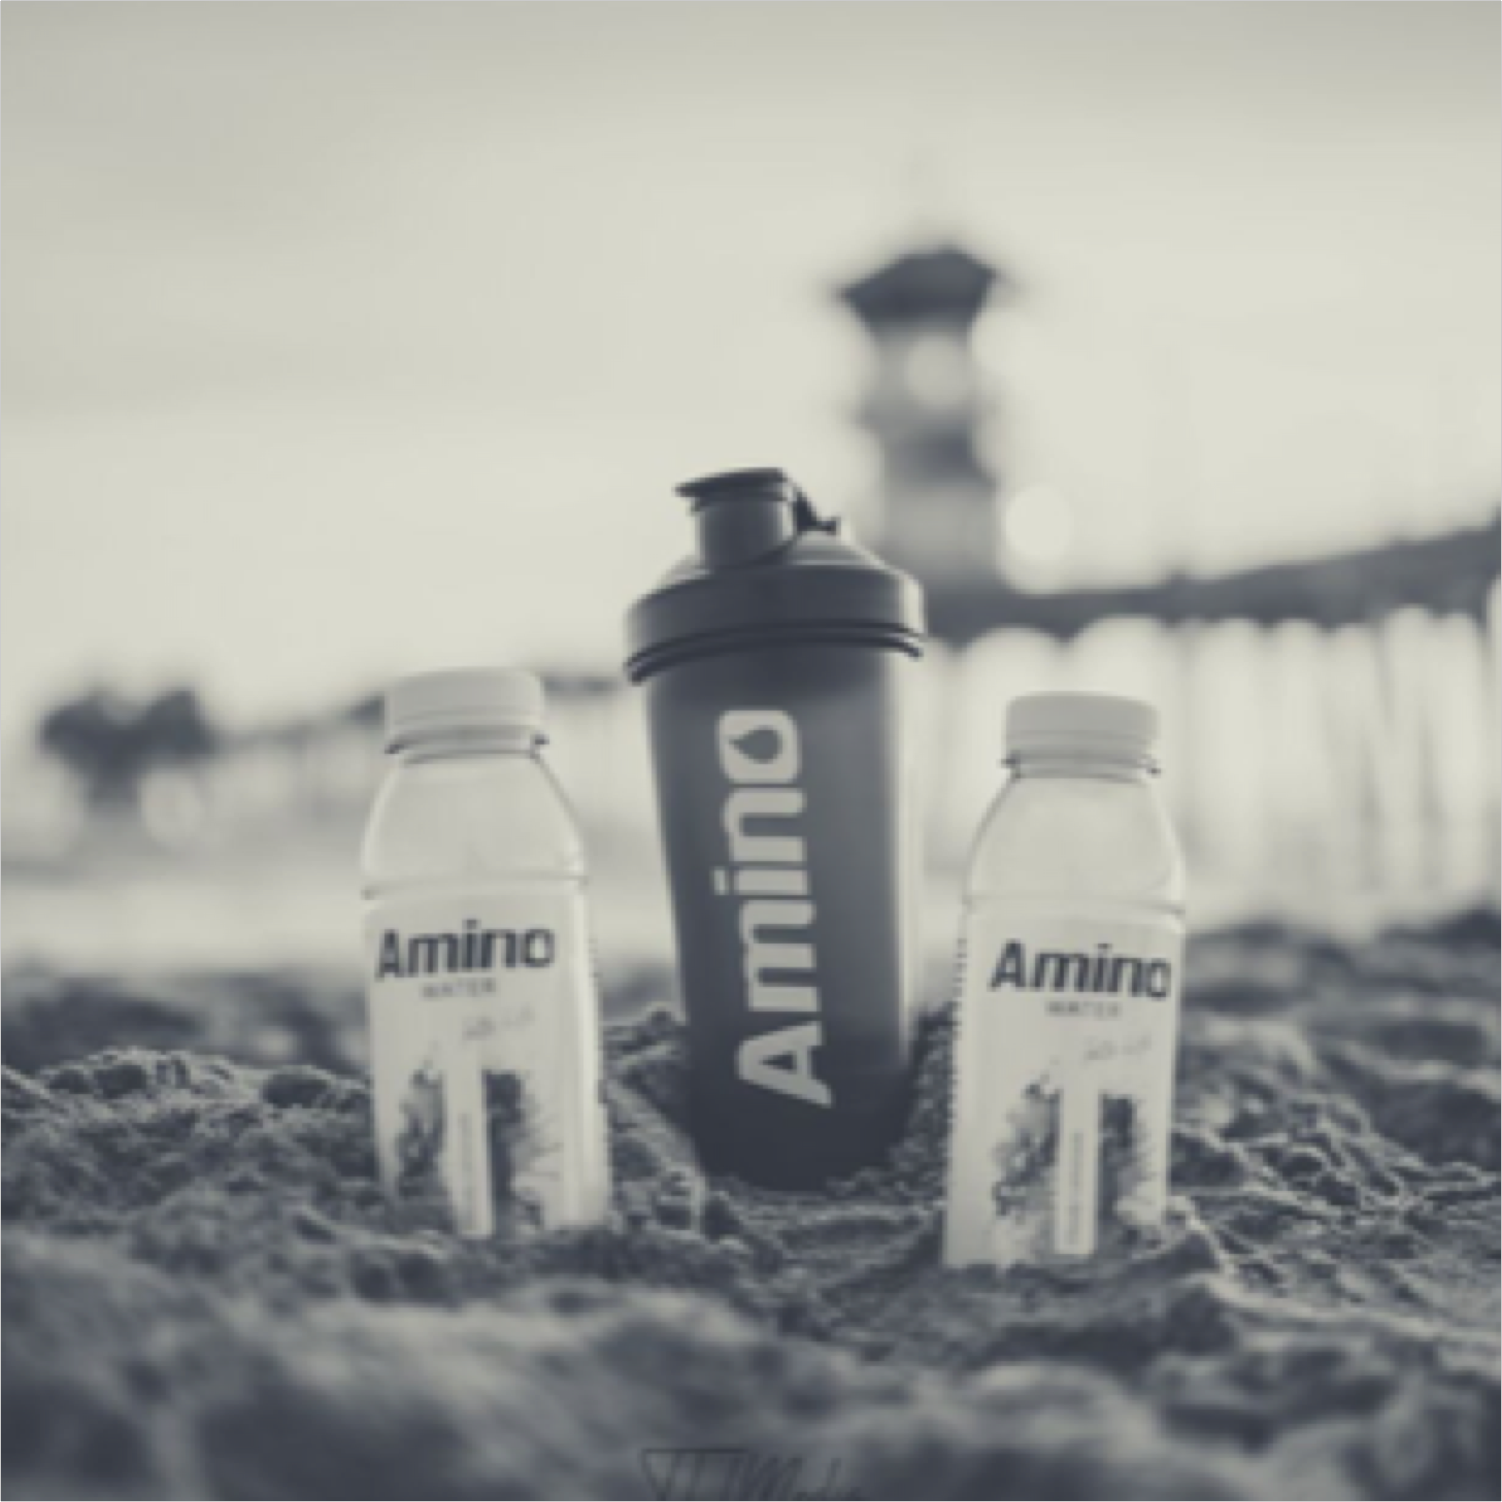 drink amino products on beach